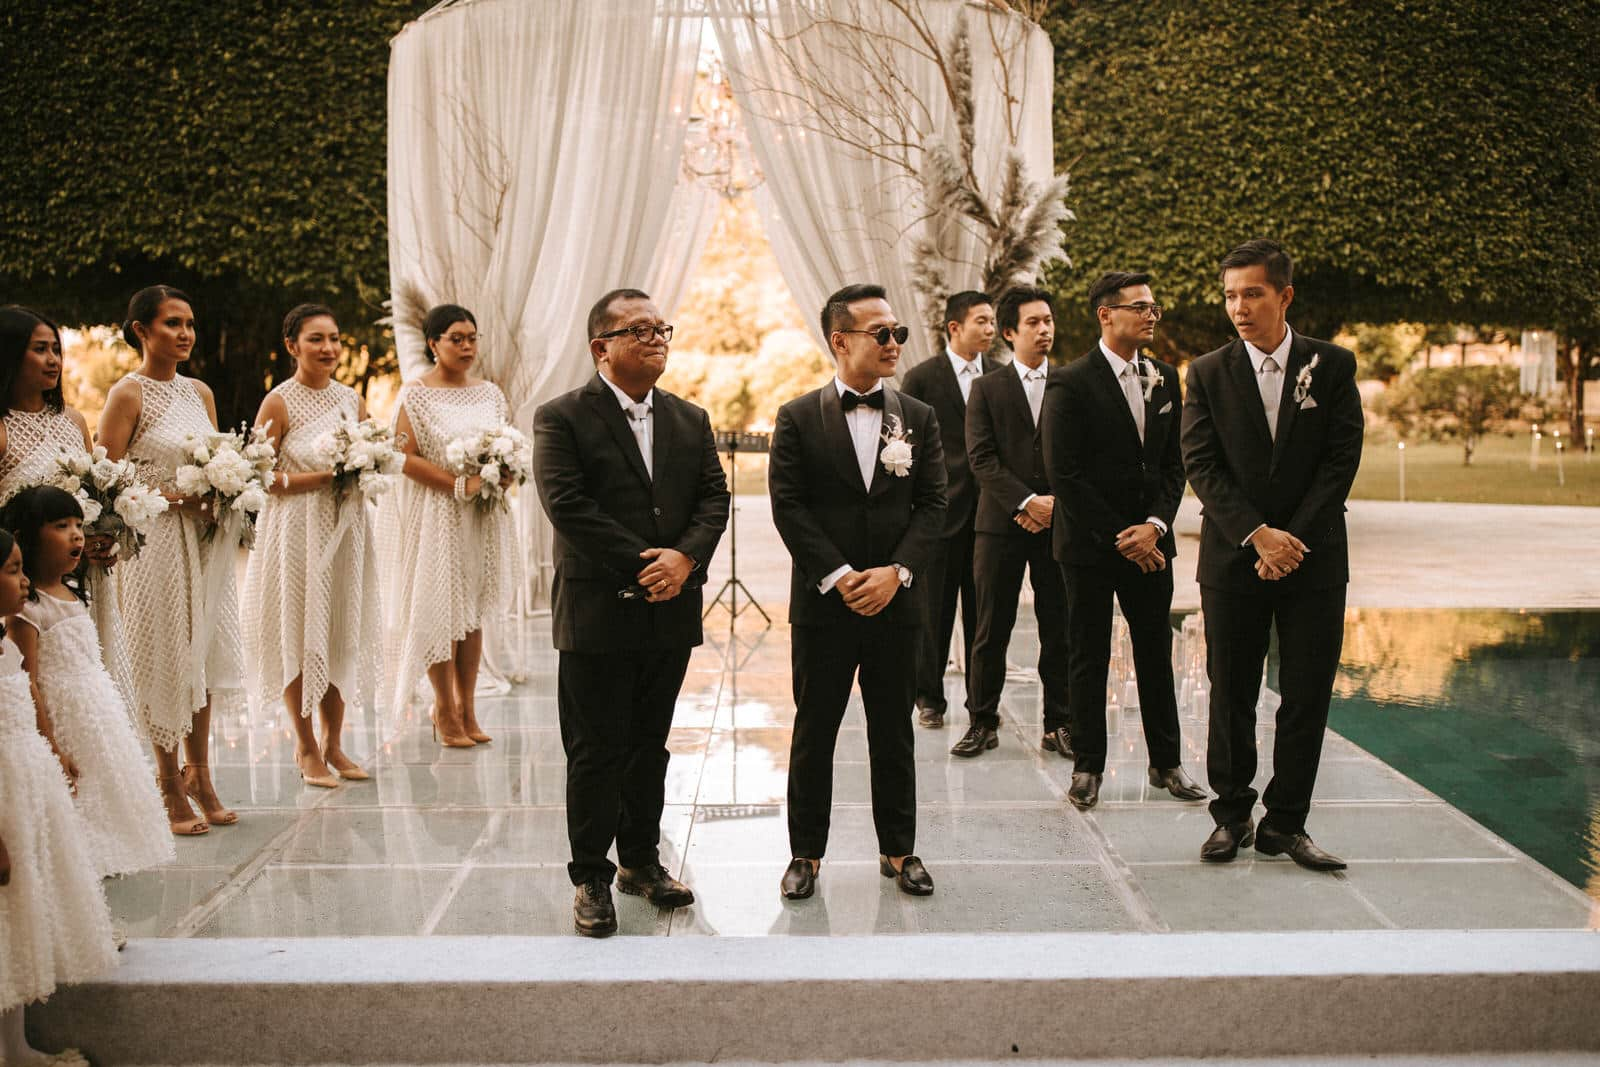 A groom and his groomsmen and the bridesmaids are waiting for the bride.